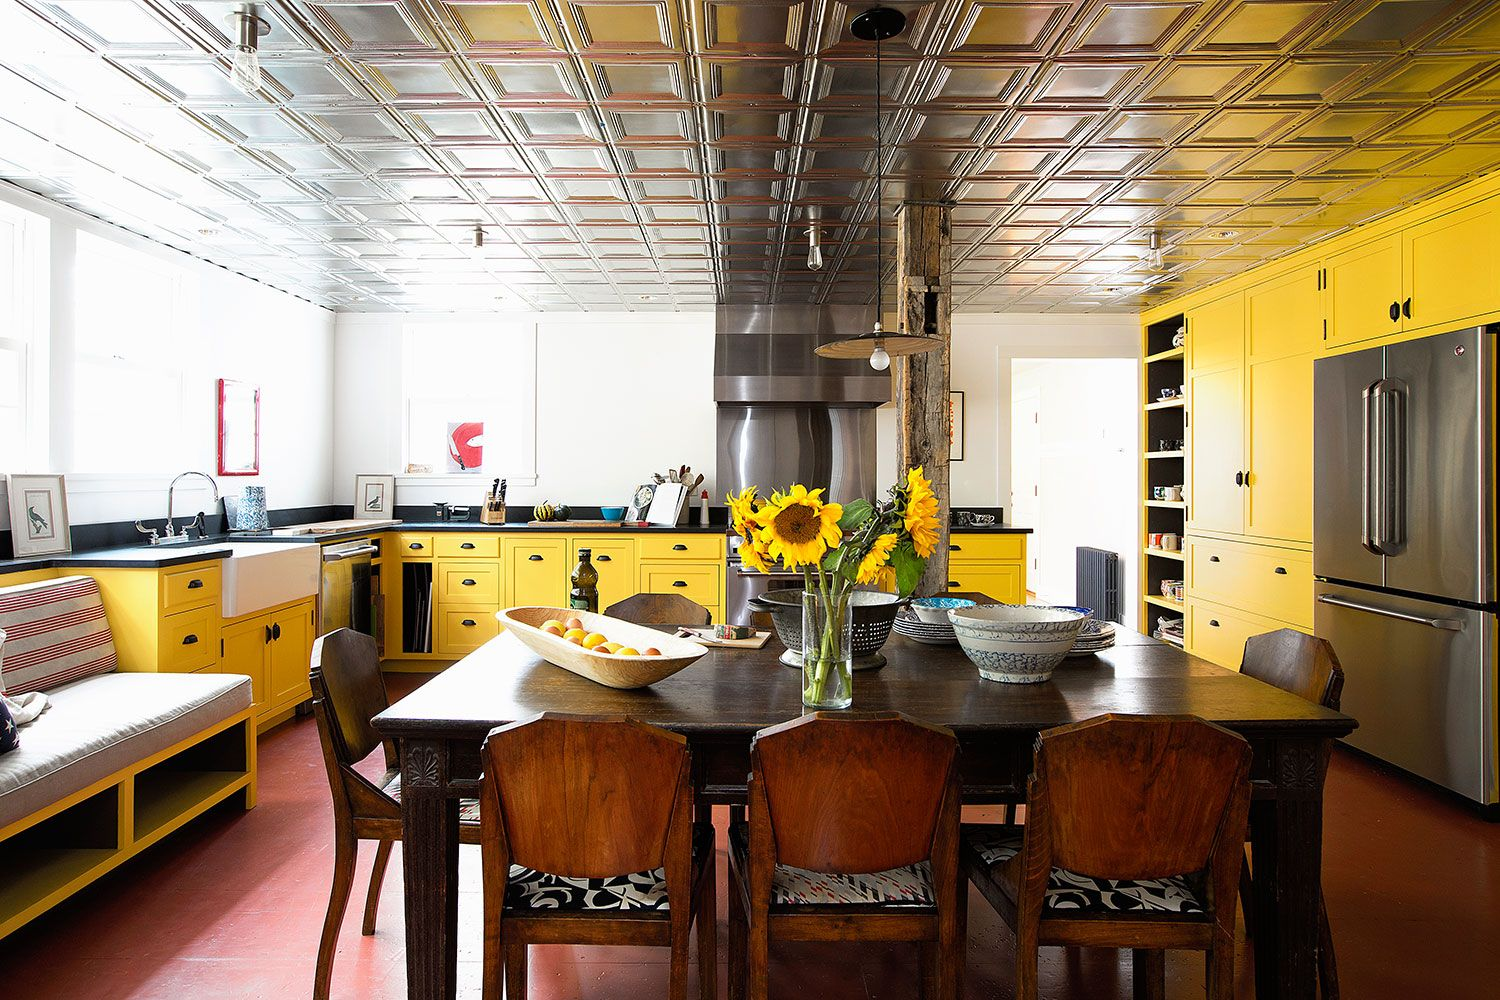 21 Yellow Kitchen Ideas   Decorating Tips for Yellow Colored Kitchens yellow kitchens